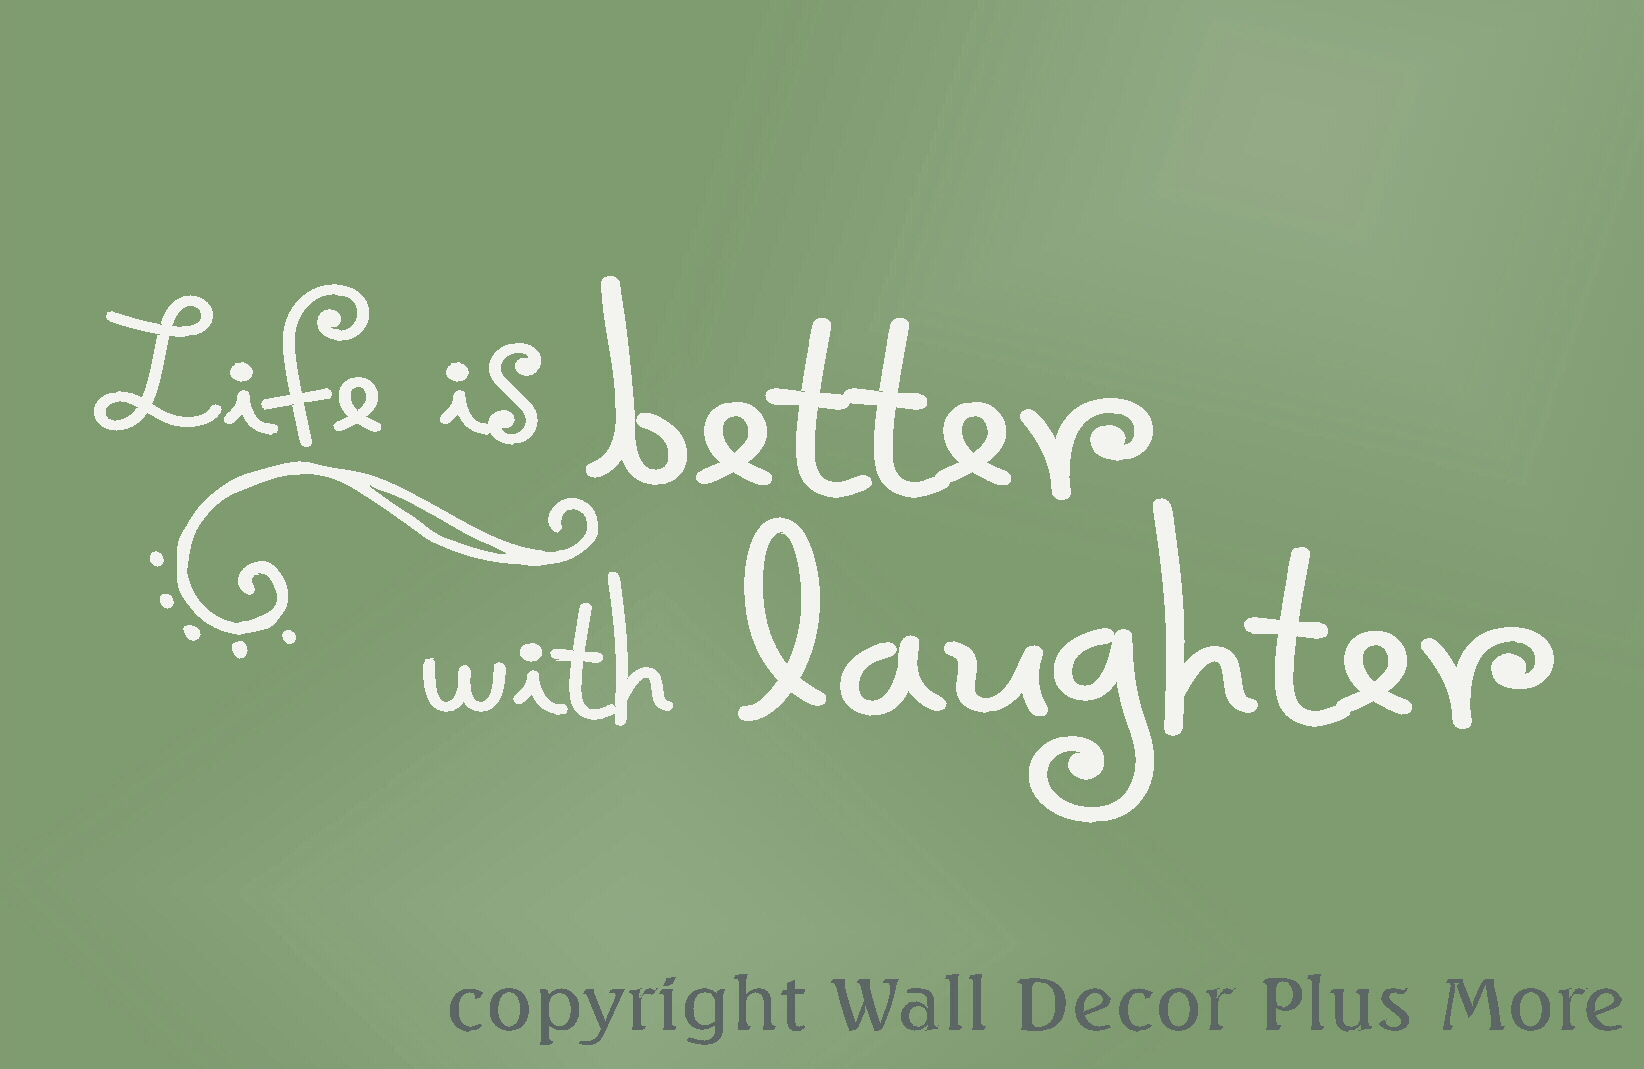 Wall Decor Plus More : Update back to school sale wall decor plus more